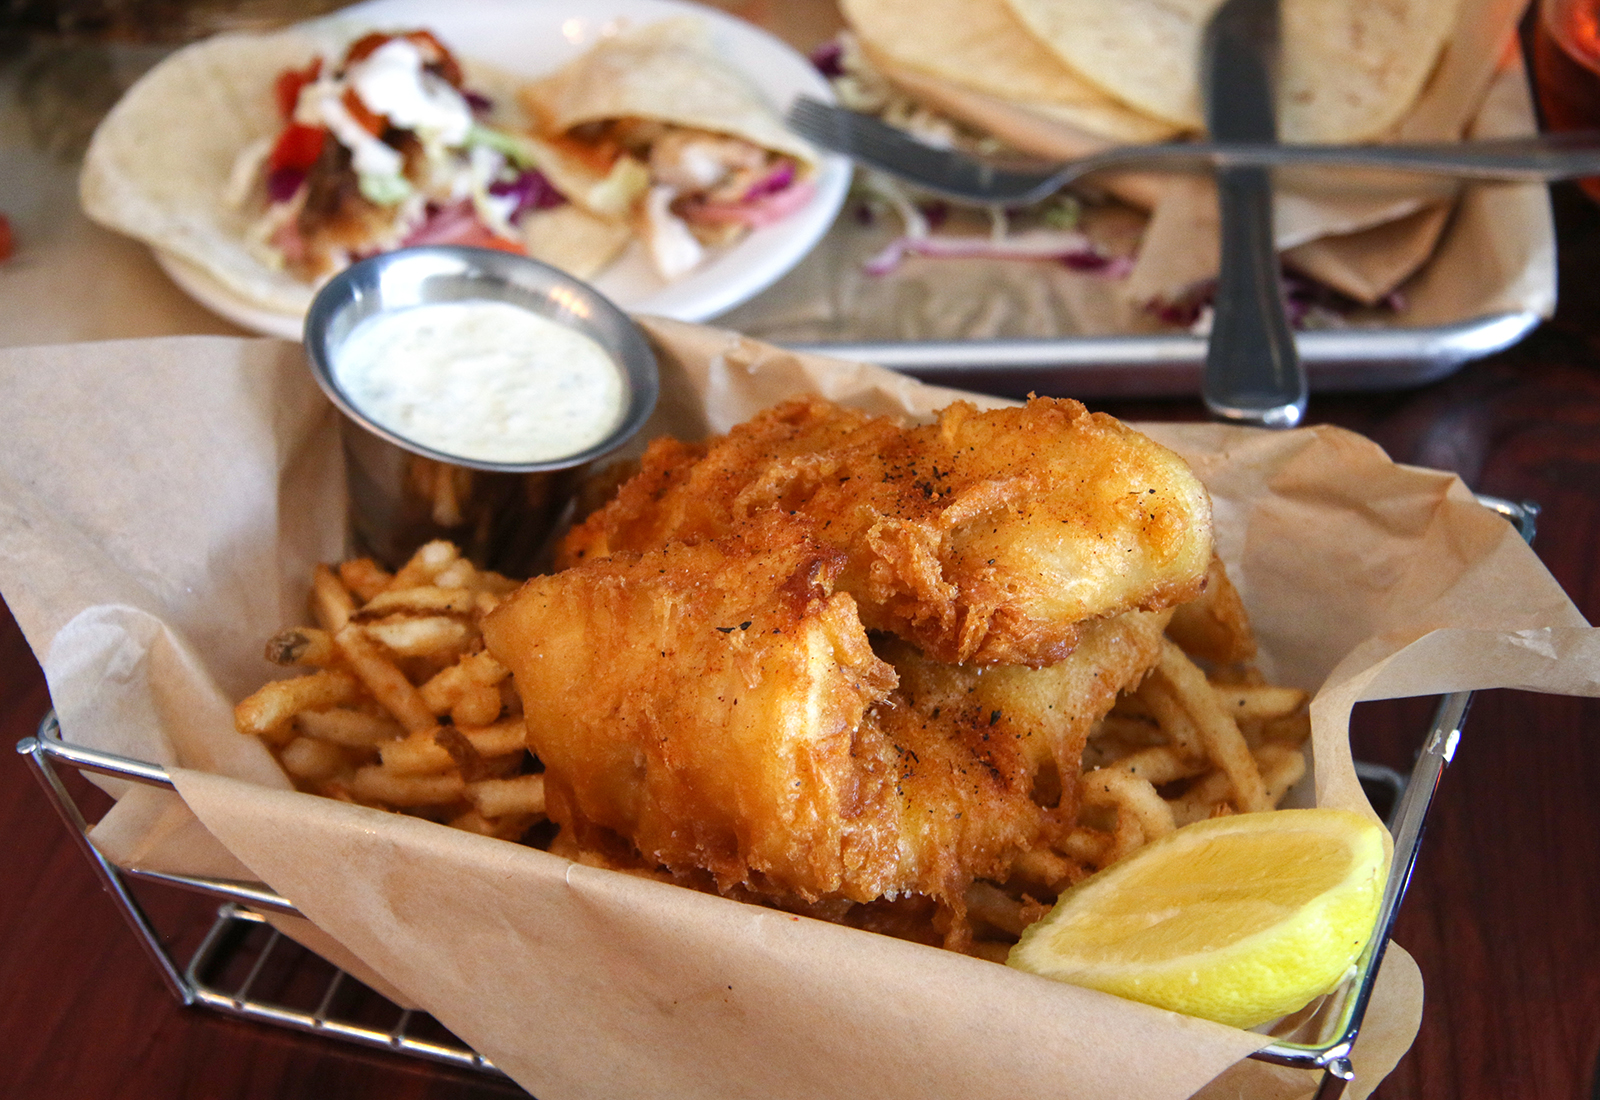 Fish and chips at Reel Fish Shop & Grill in Sonoma. Heather Irwin/PD